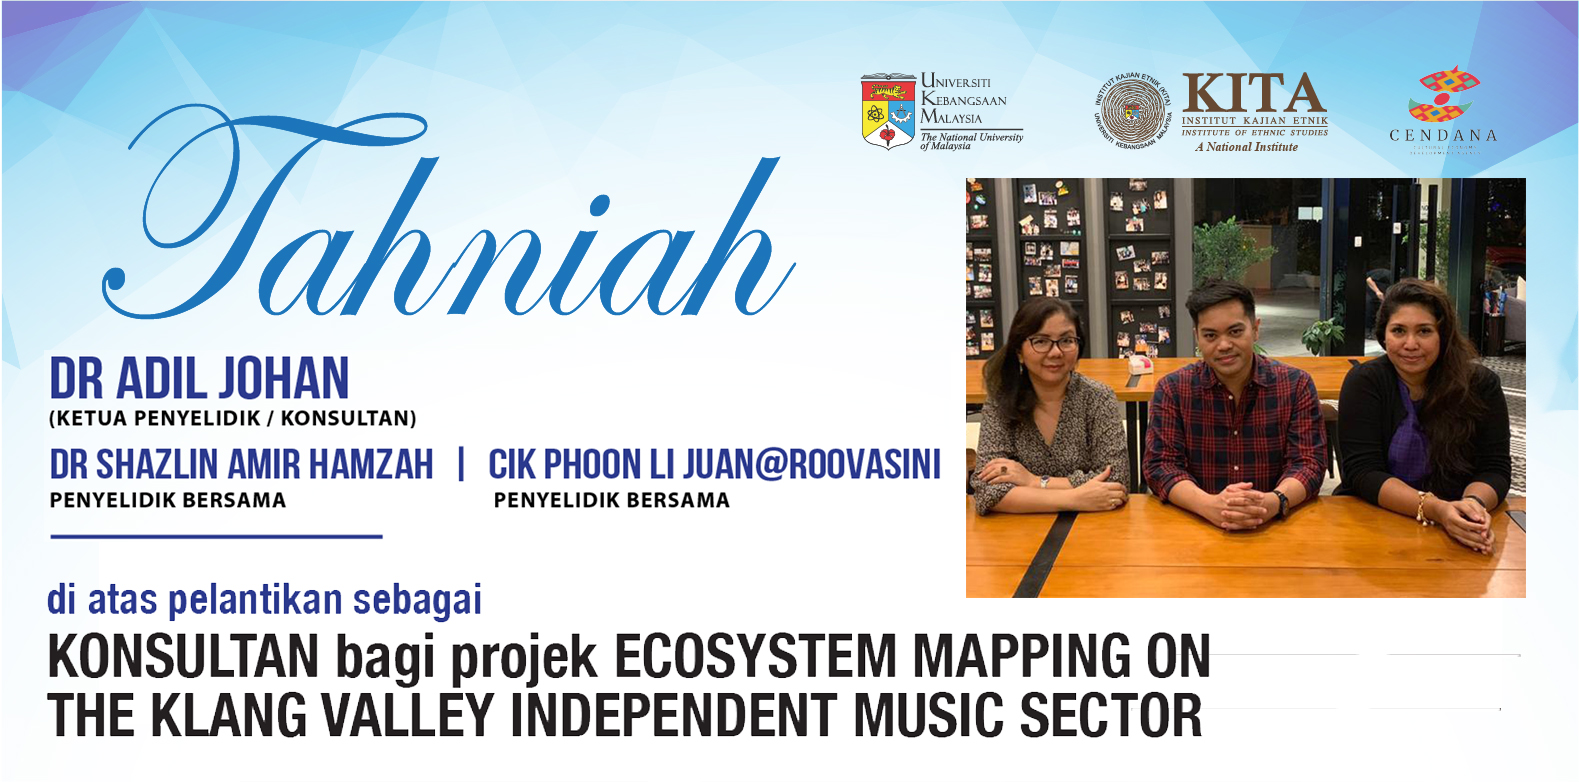 Appointment as Research Consultant for Ecosystem Mapping on the Klang Valley Independent Music Sector